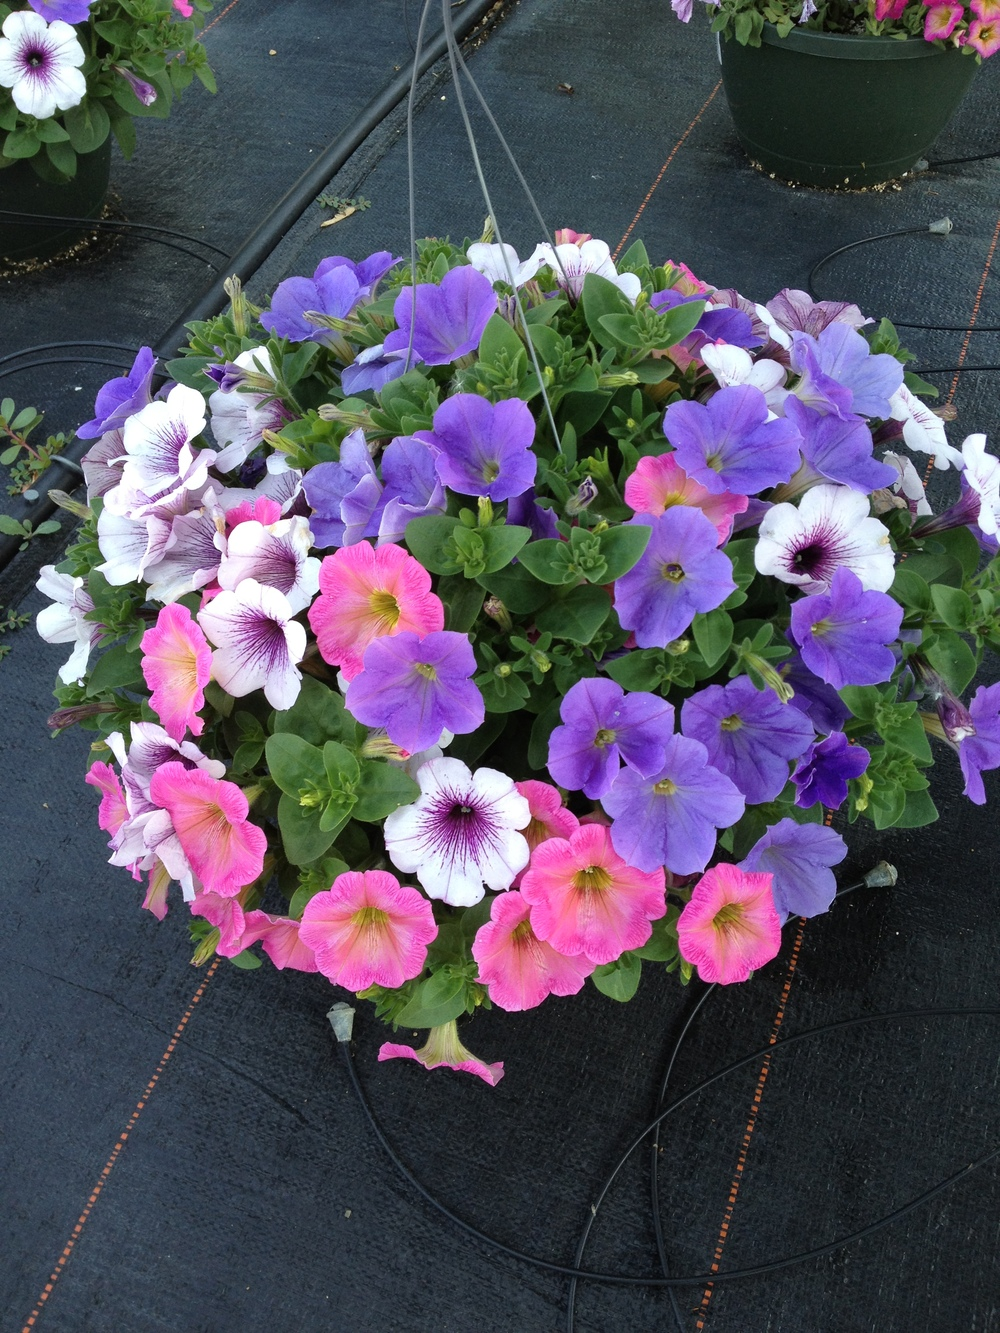 "Petunias add beautiful color in a variety of colors in a full sun environment. Awesome in planters, baskets, and bedding. It truly is one of the most beautiful and versatile spring annual on the market and it popularity over the years has proven this time and time again. Petunias are featured in 4.5"", 8"" and 12"" sun combo planters, 10"" and 12"" hanging baskets, and 16"" grapevine baskets."